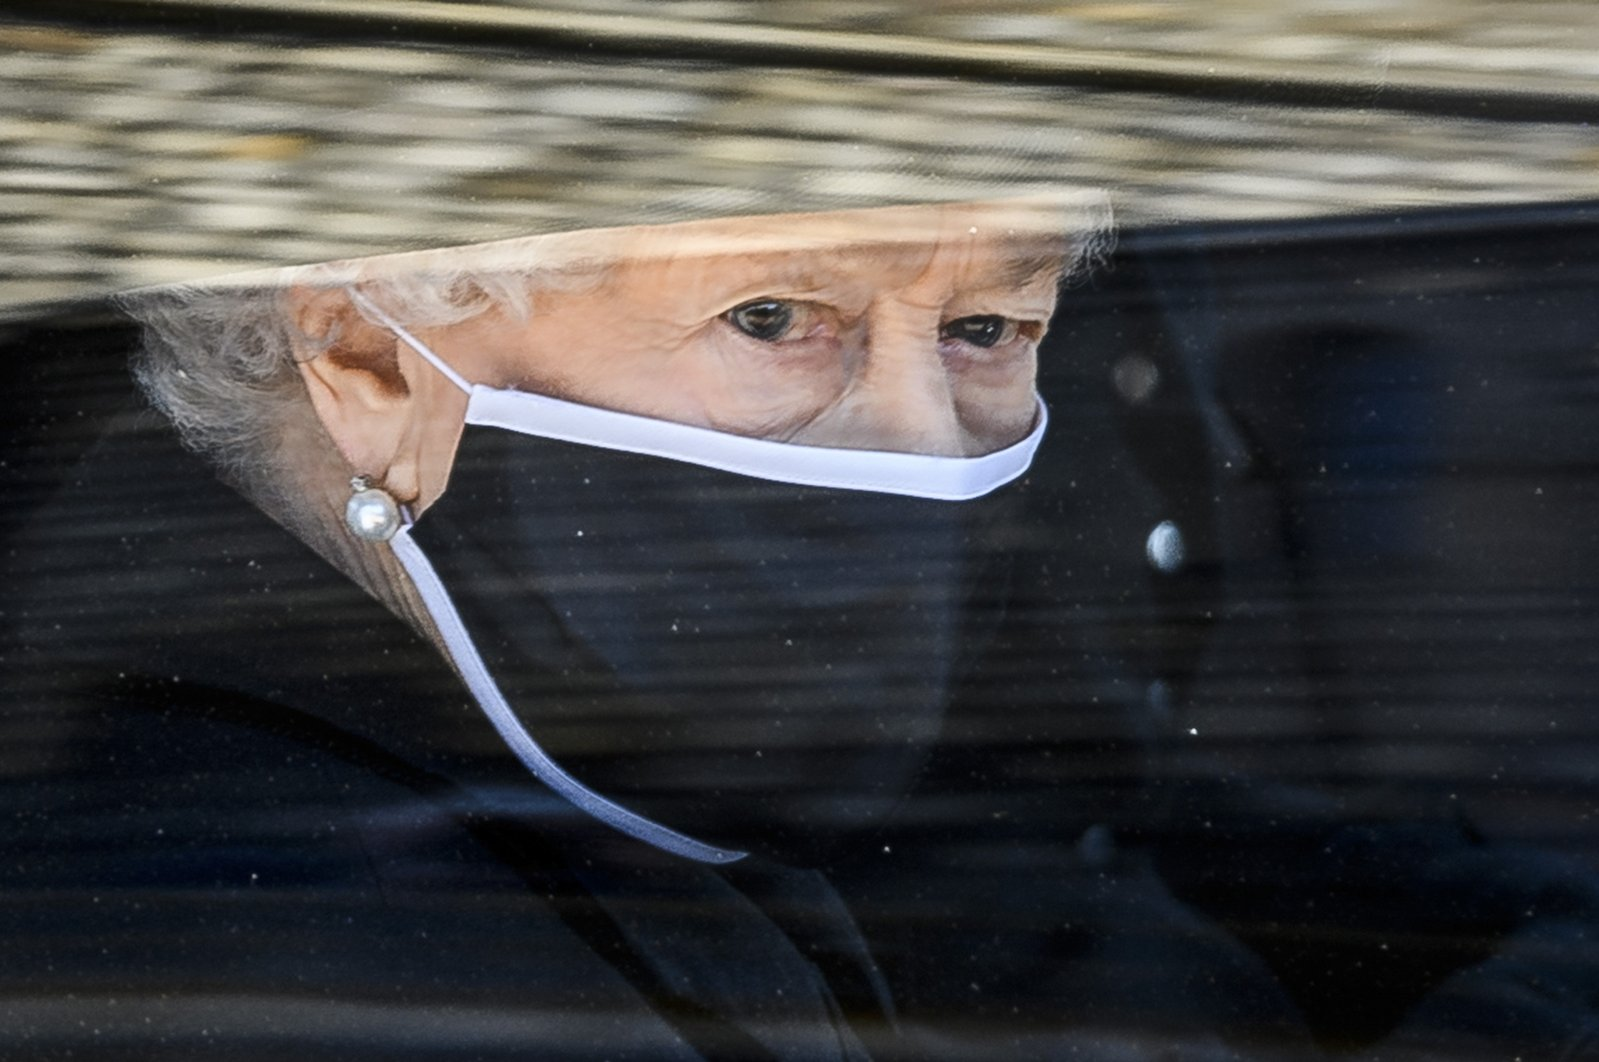 Britain's Queen Elizabeth II follows the coffin in a car as it makes it's way past the Round Tower during the funeral of Britain's Prince Philip inside Windsor Castle in Windsor, England, April 17, 2021. (AP Photo)